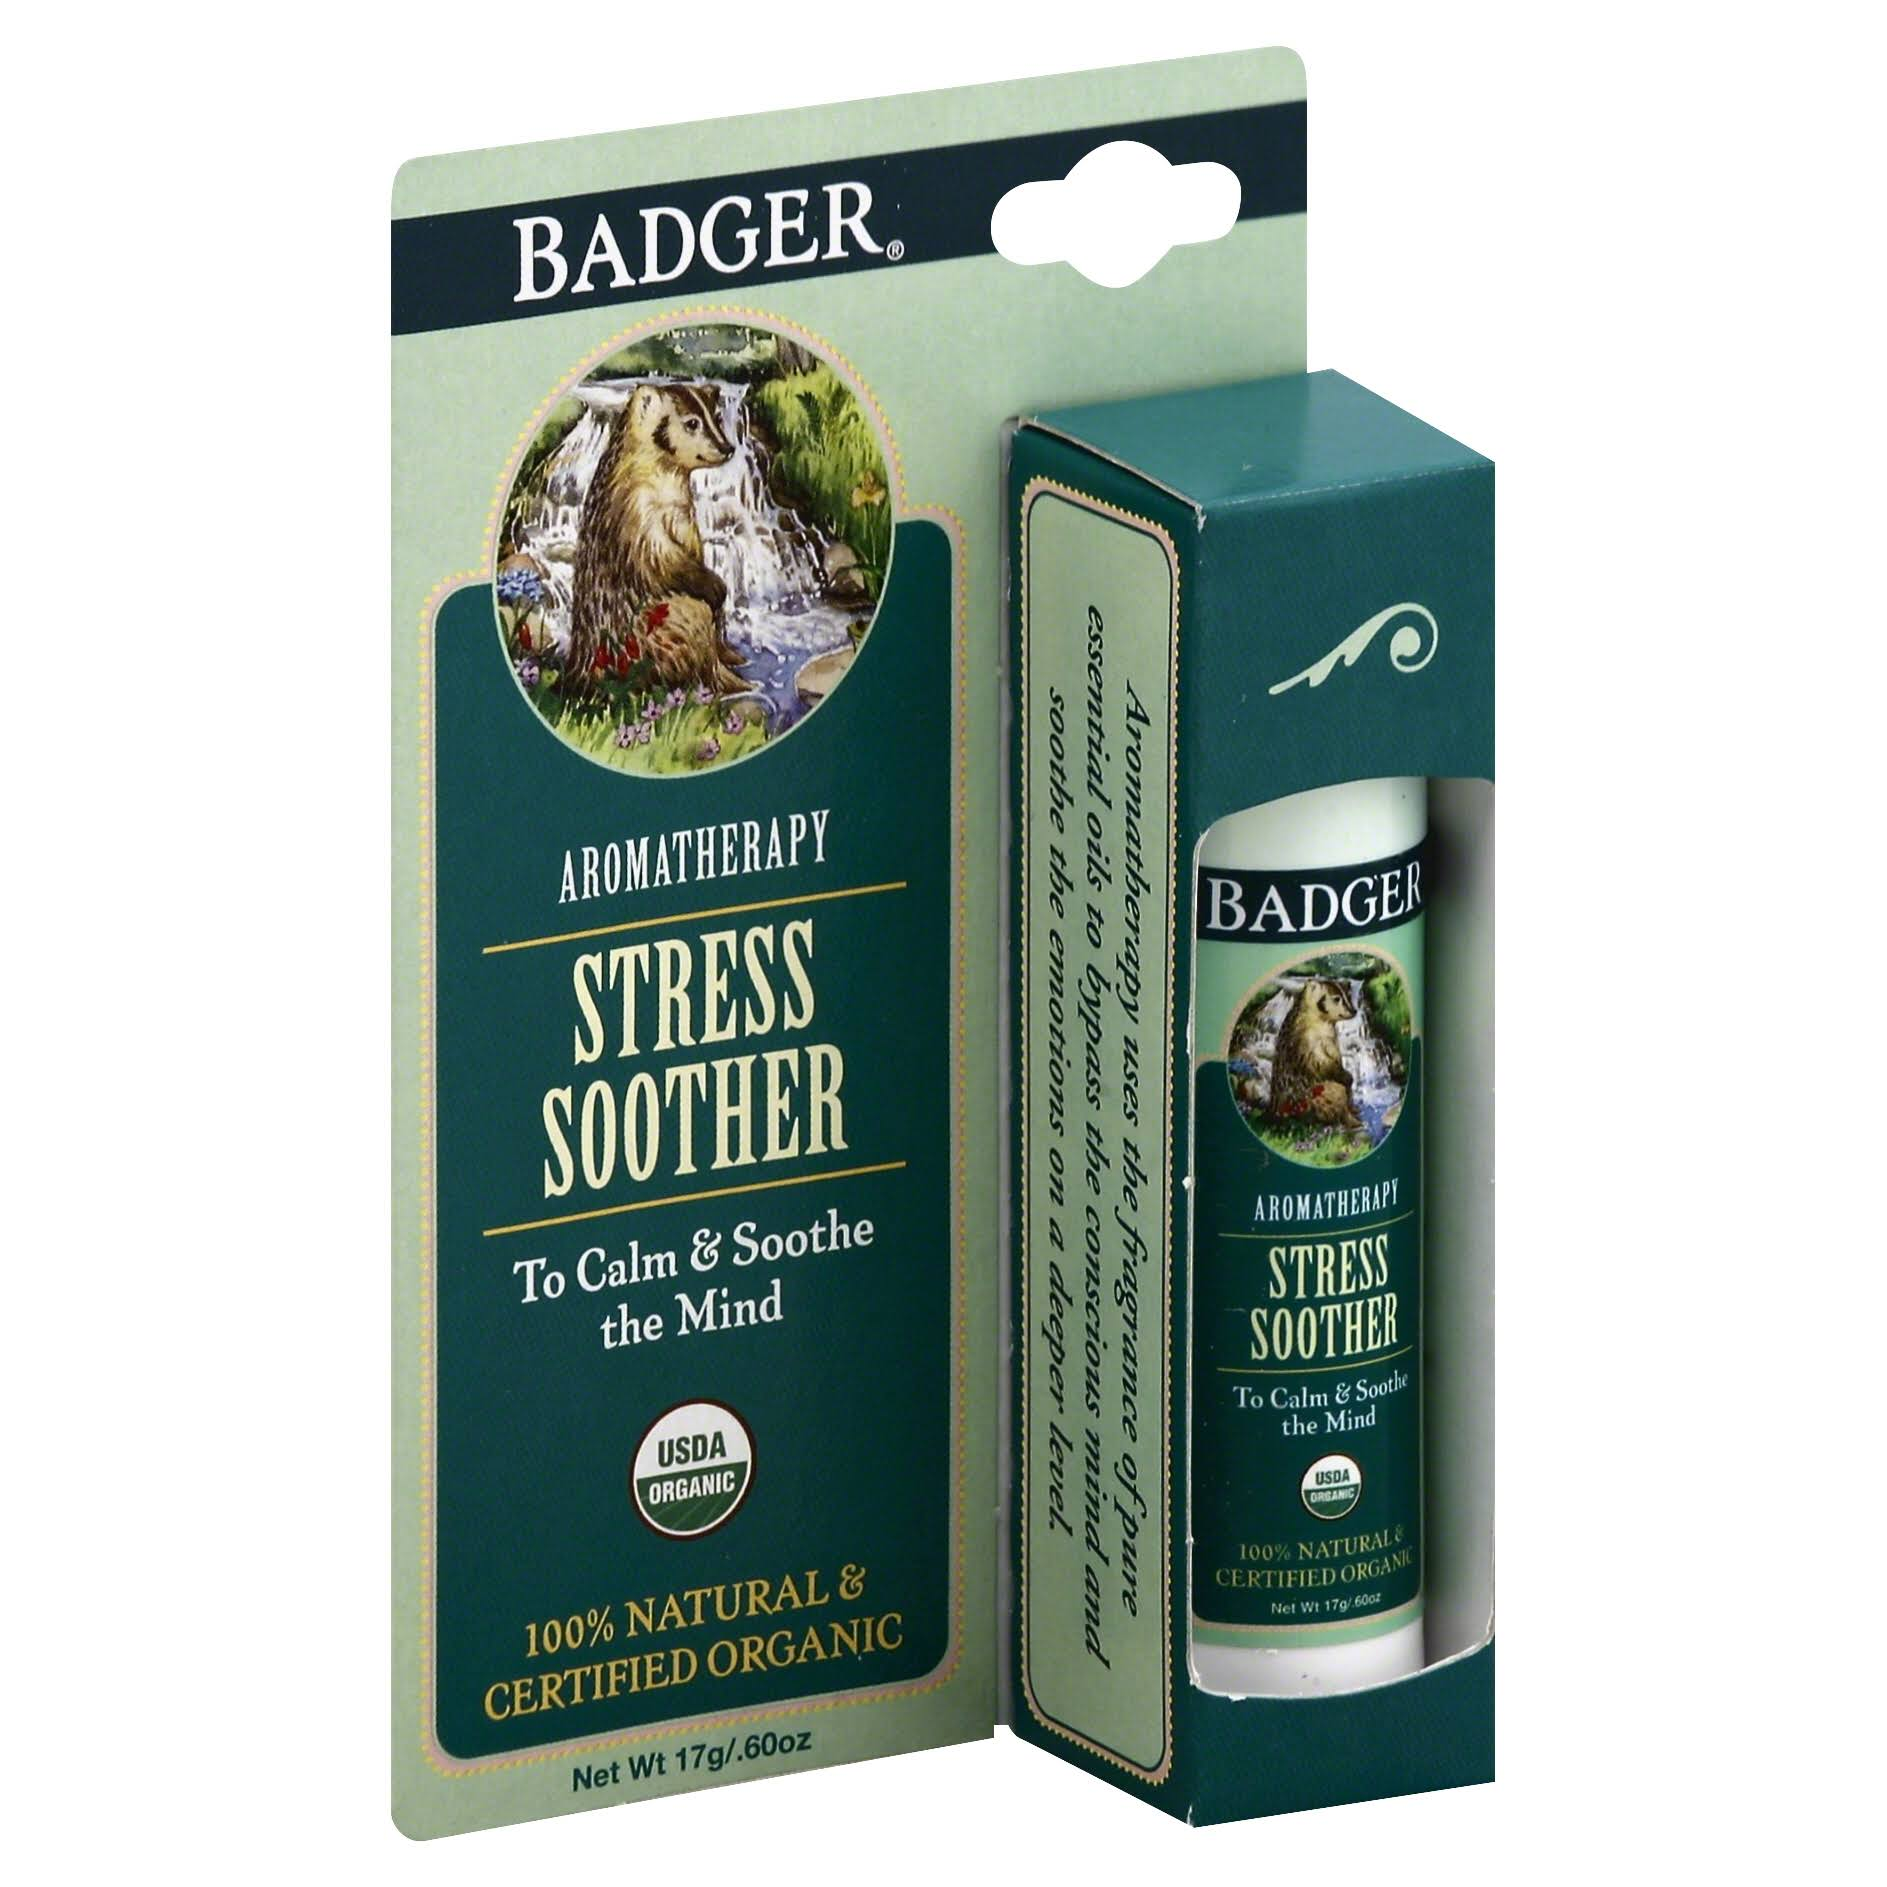 Badger Aromatherapy Stress Soother Balm - 0.6oz